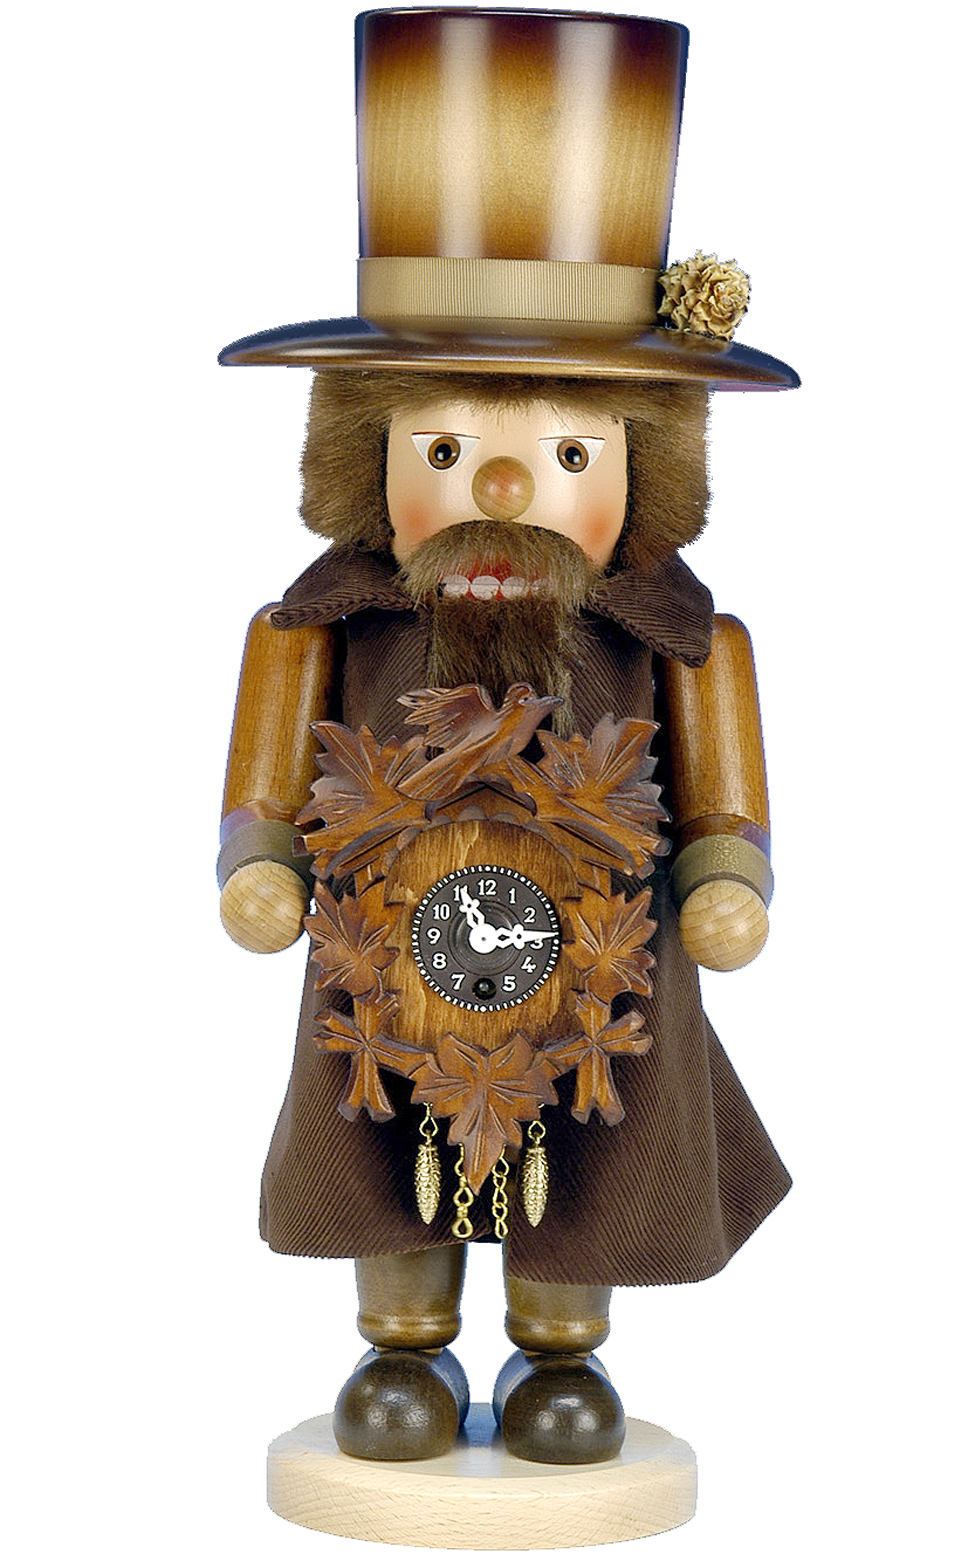 Christian Ulbricht Nutcracker CLOCKMAKER with Keywound Clock #763 Germany